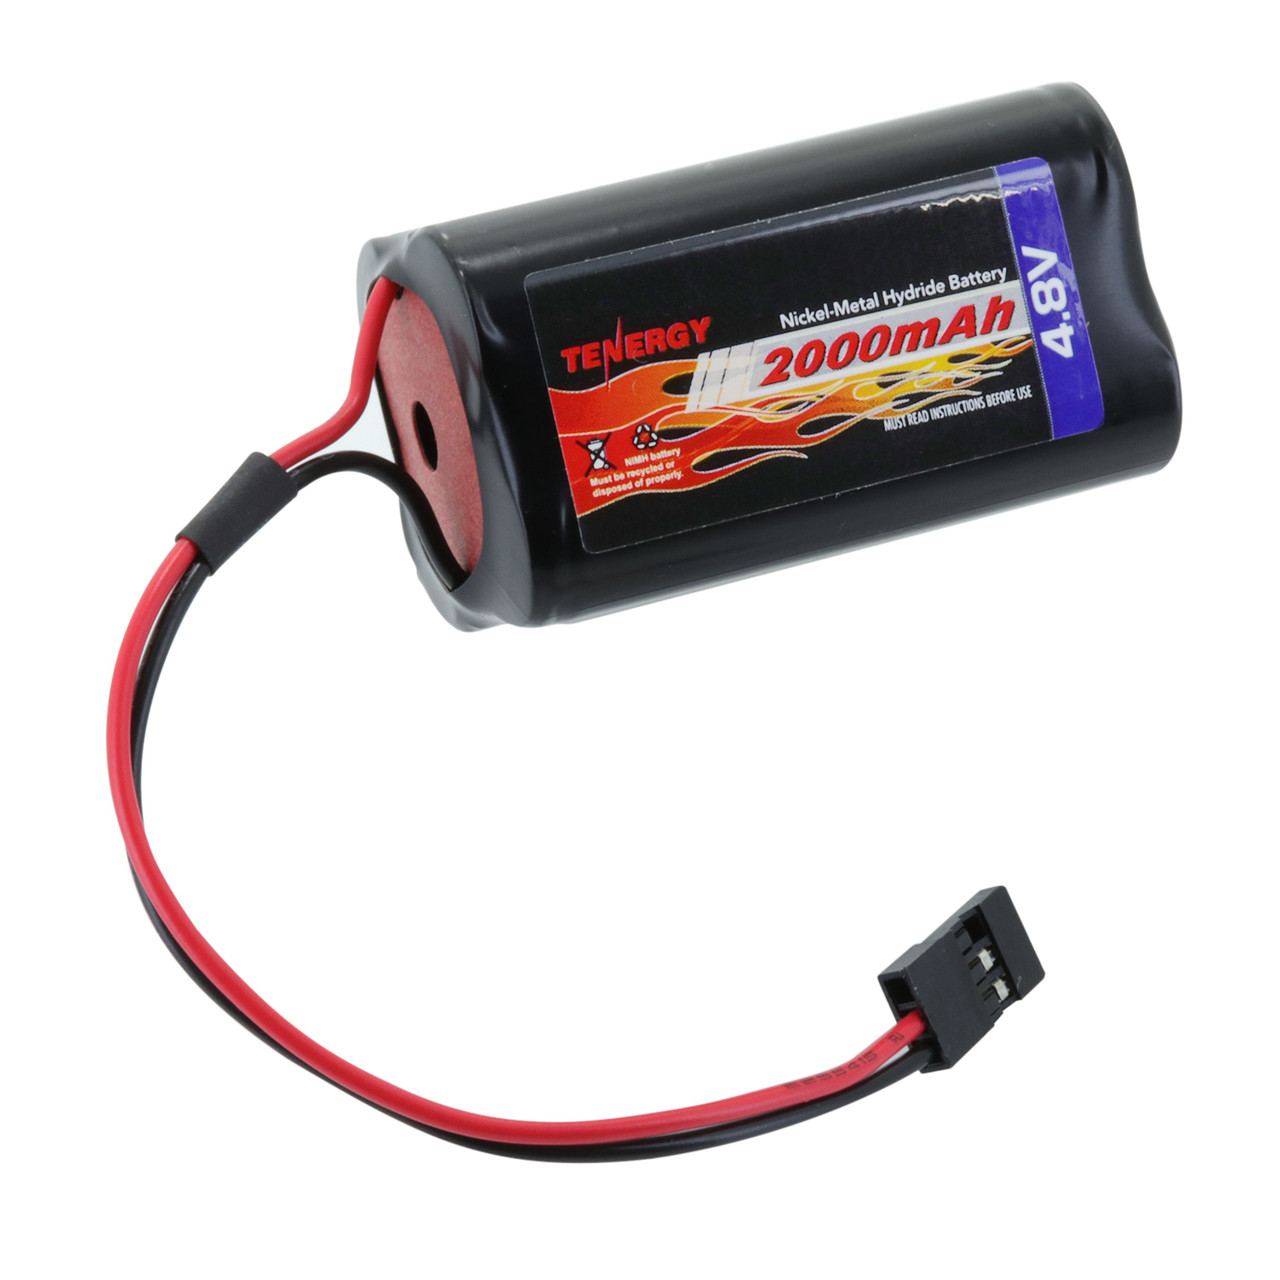 Tenergy NiMH 4.8V 2000mAh Square Receiver RX Battery Pack for RC Airplanes